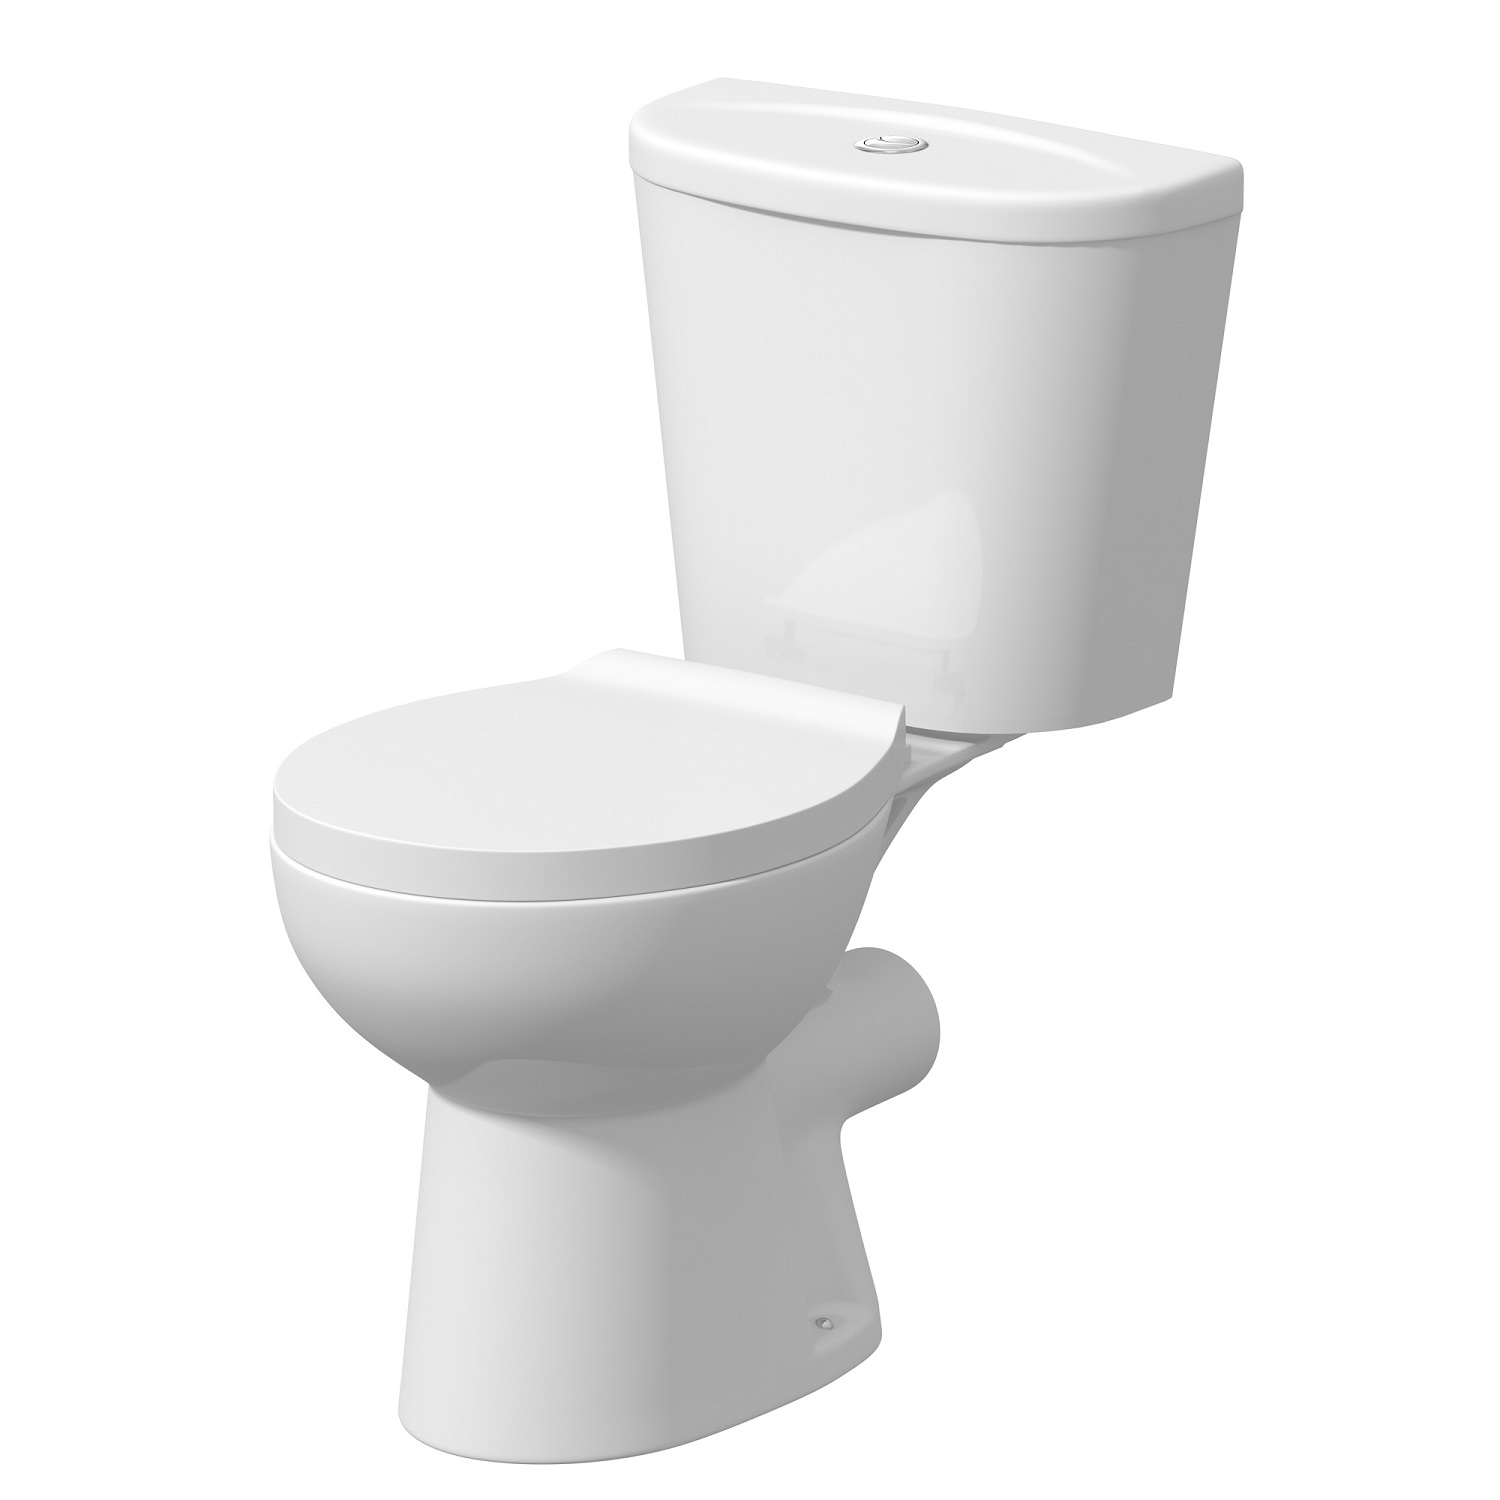 Bathroom Suite Close Coupled Toilet Amp Cloakroom Vanity Unit Basin Compact White 5056093620262 Ebay